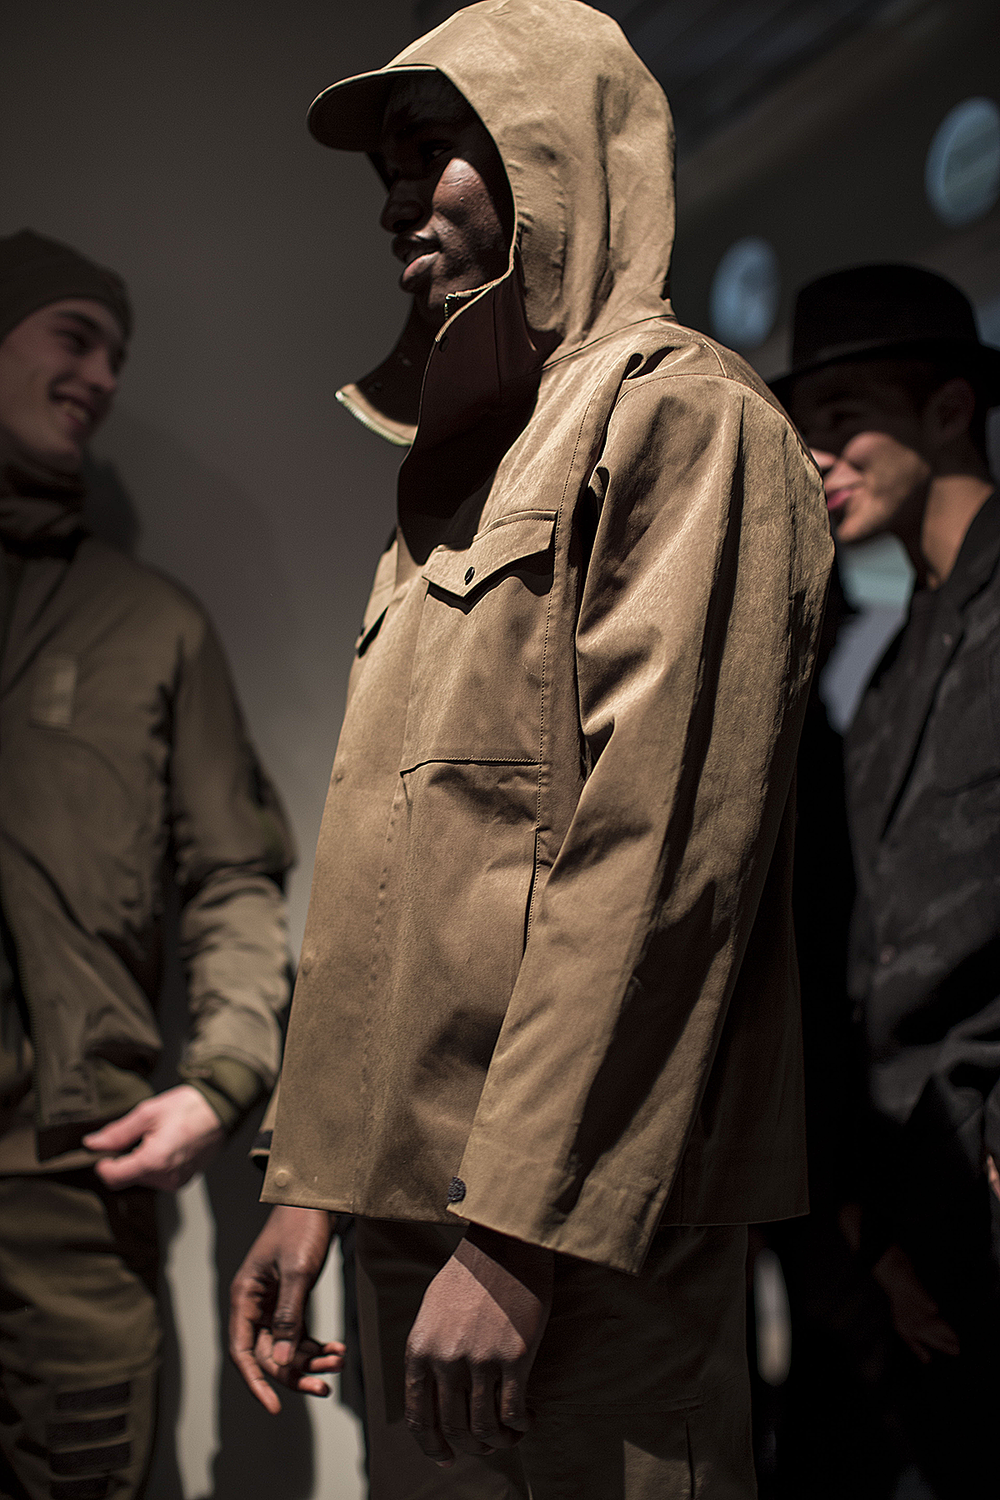 London Collections LCM-Maharishi Hooded Jacket Cagoule -Autumn Winter 2016 Lillie Eiger.png